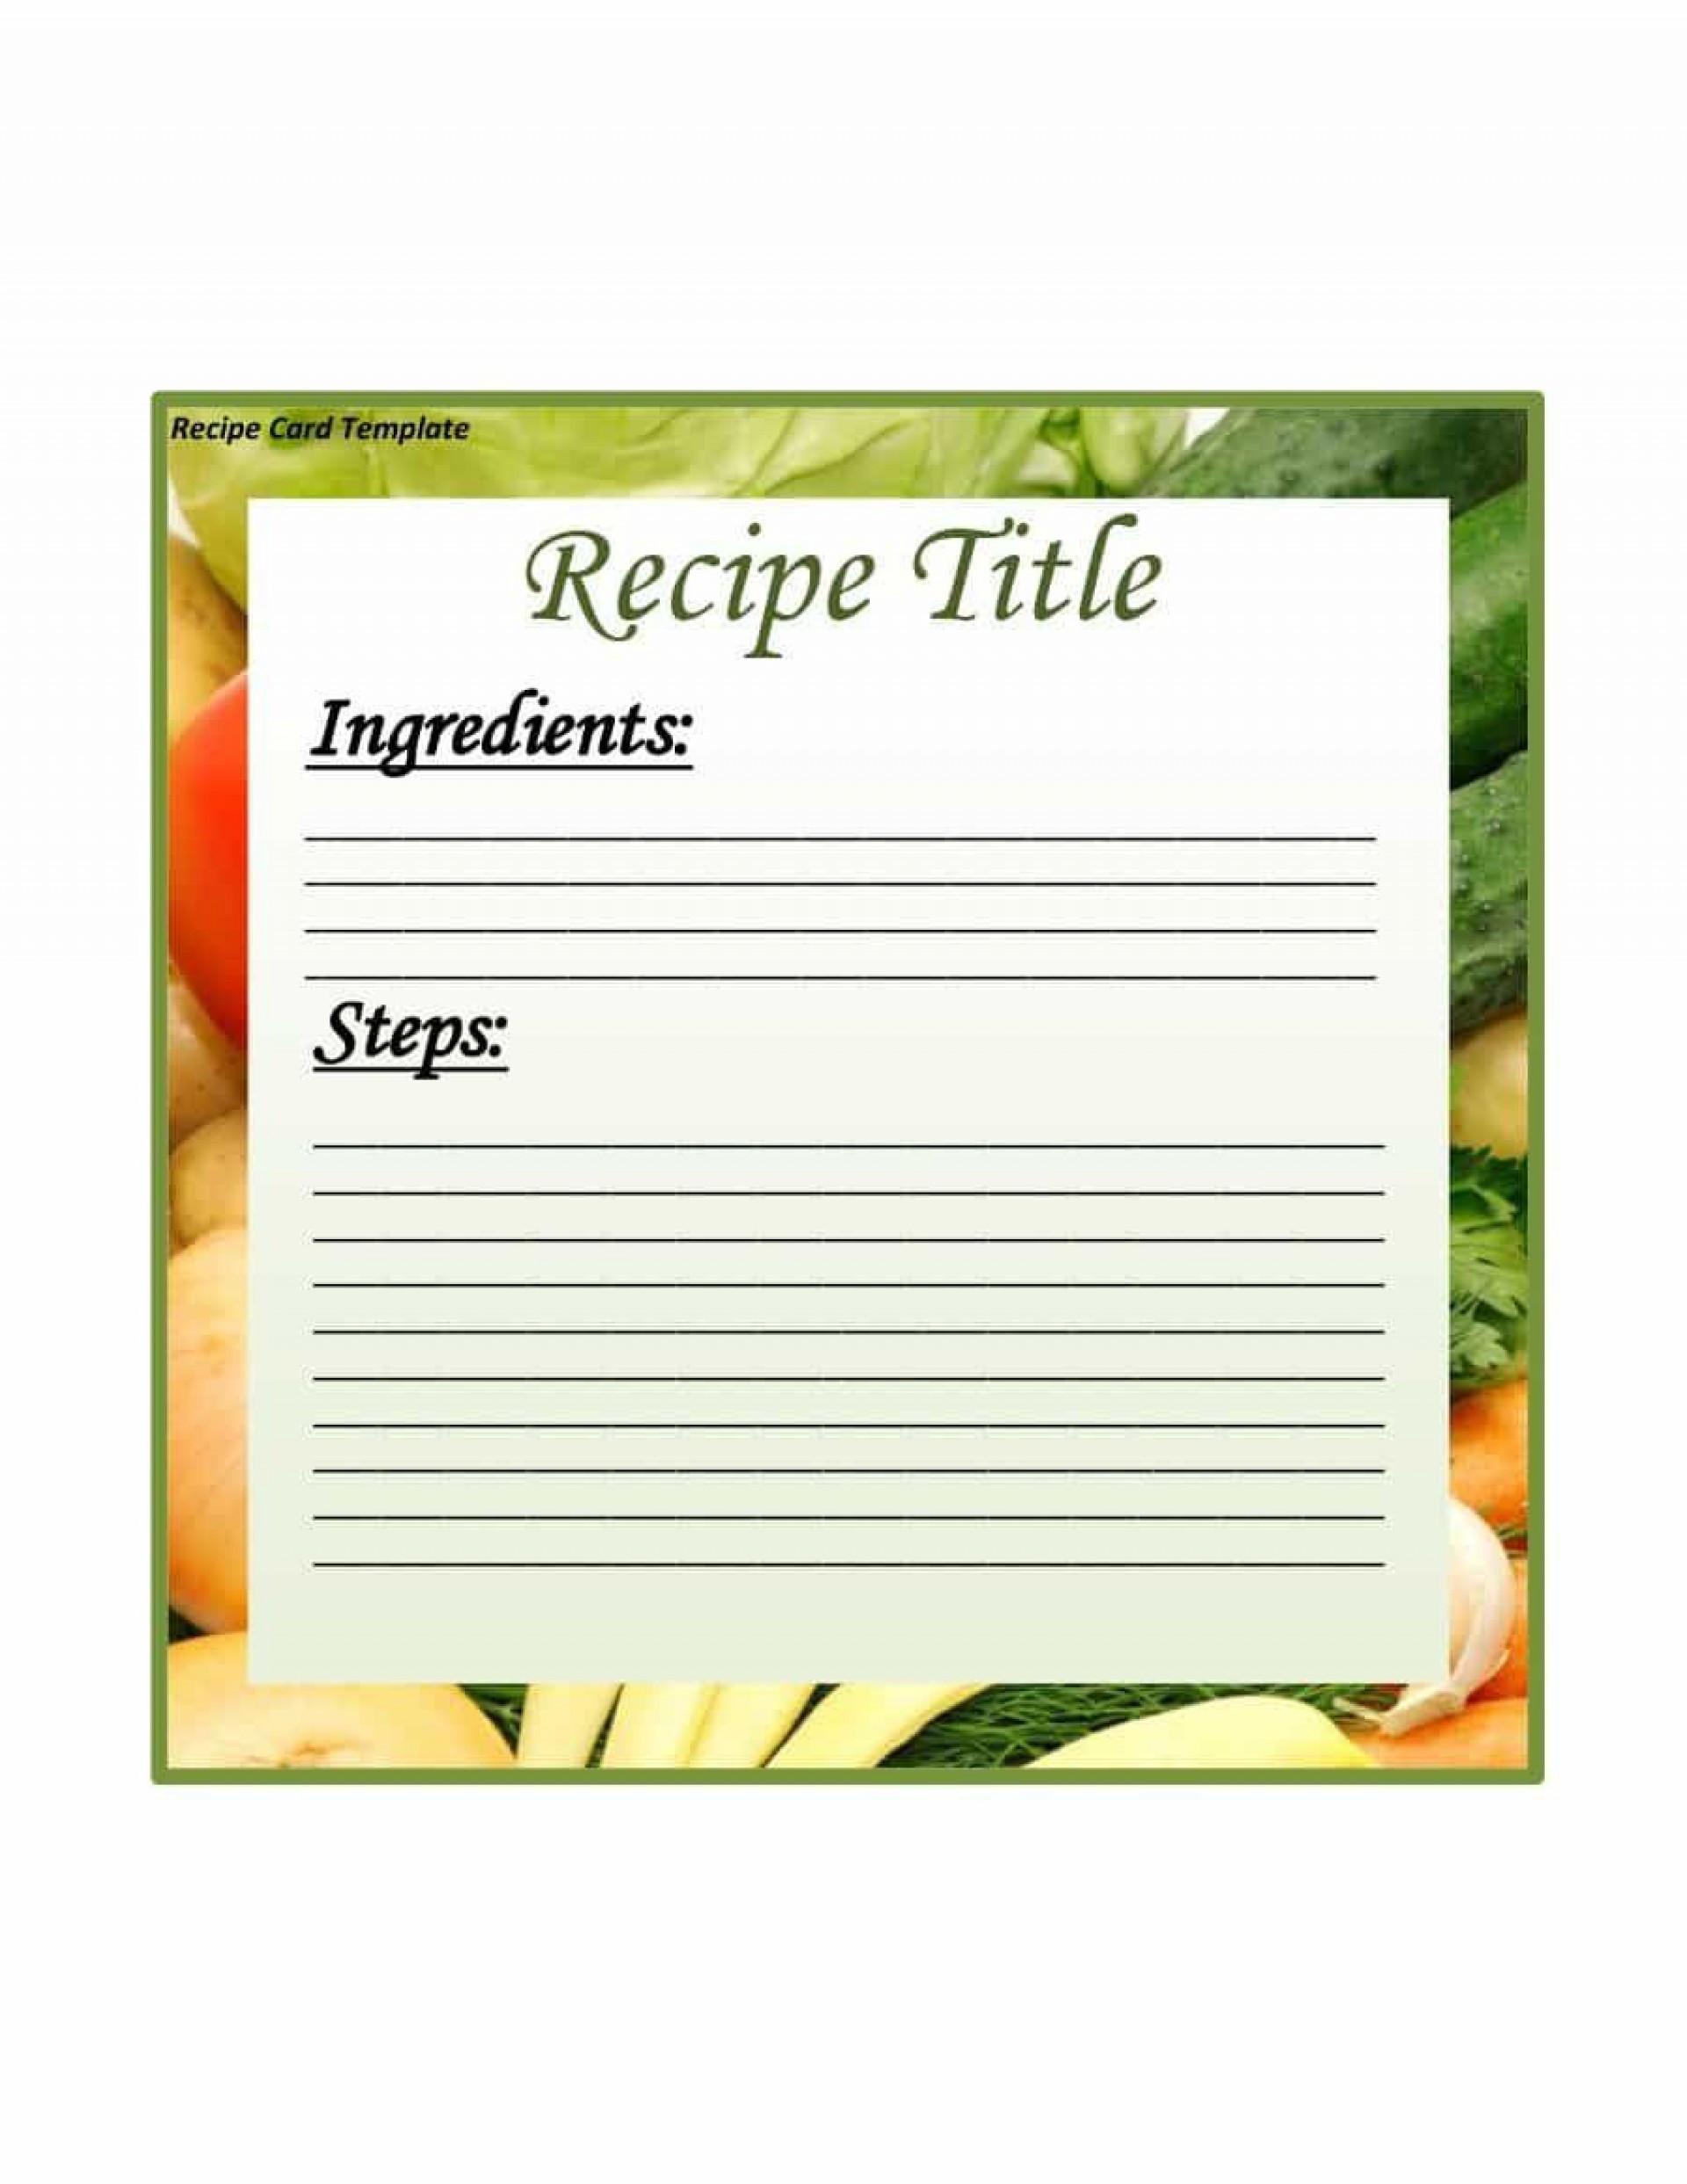 Recipe Card Template Free